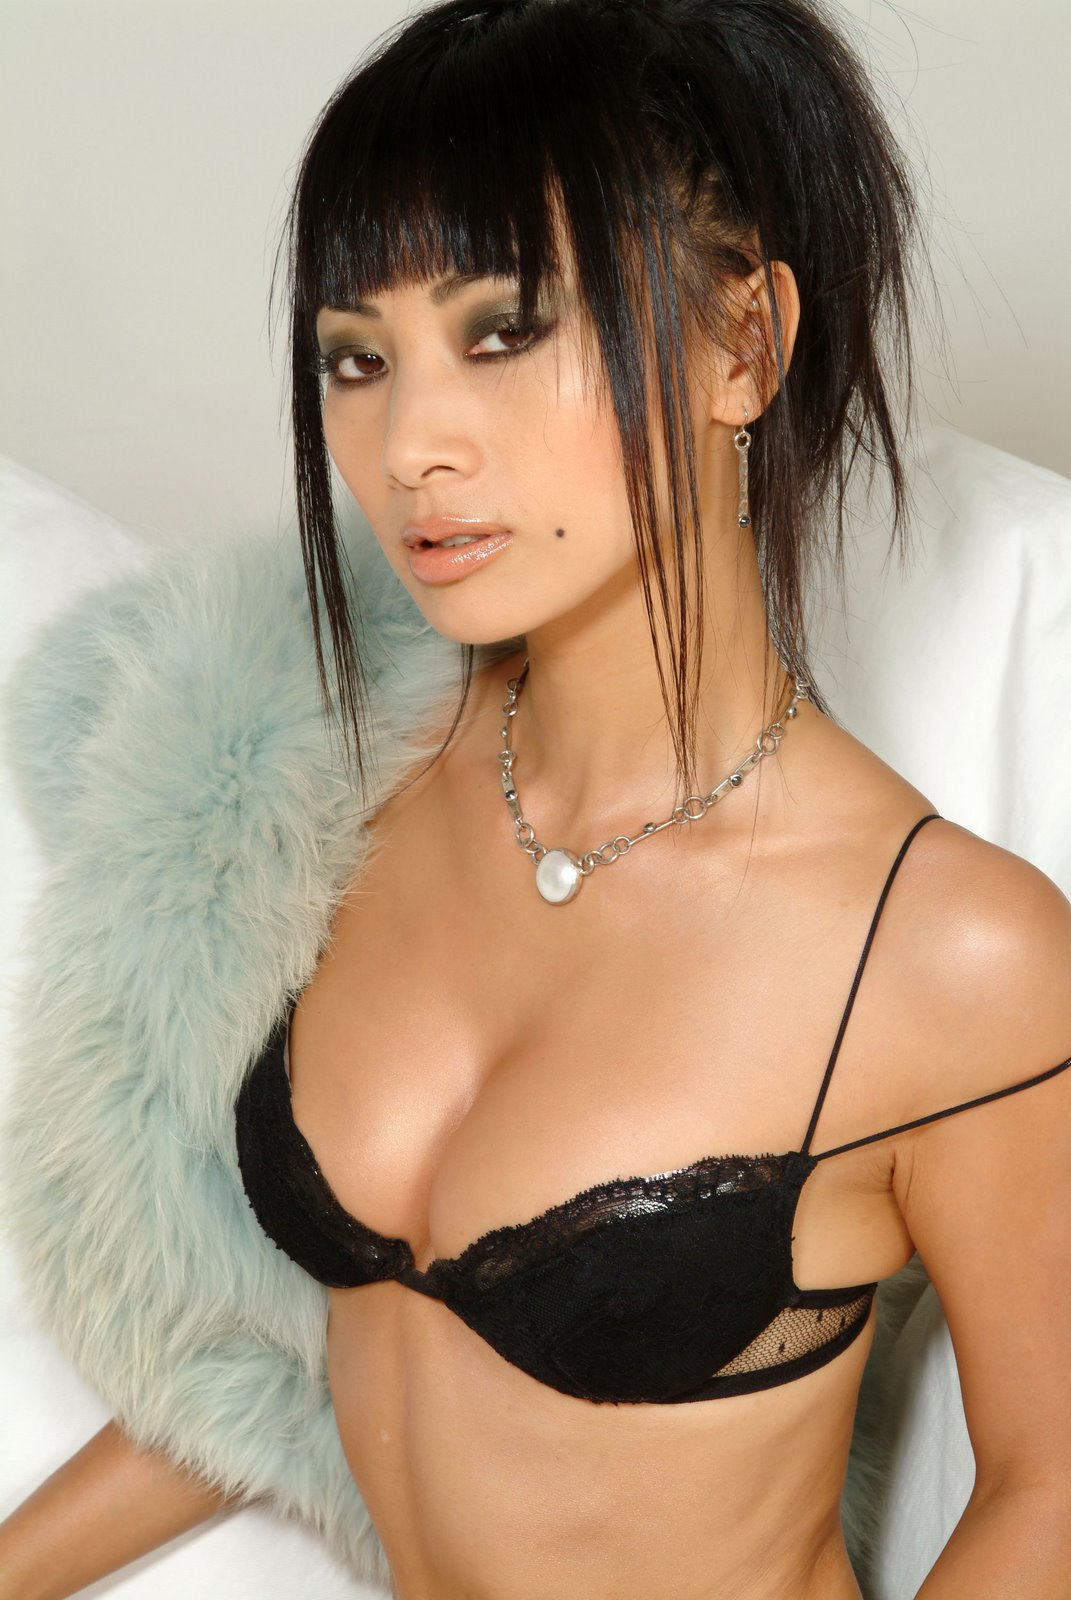 Asain Actresses Bai Ling Cleavage Show Asian Actresses